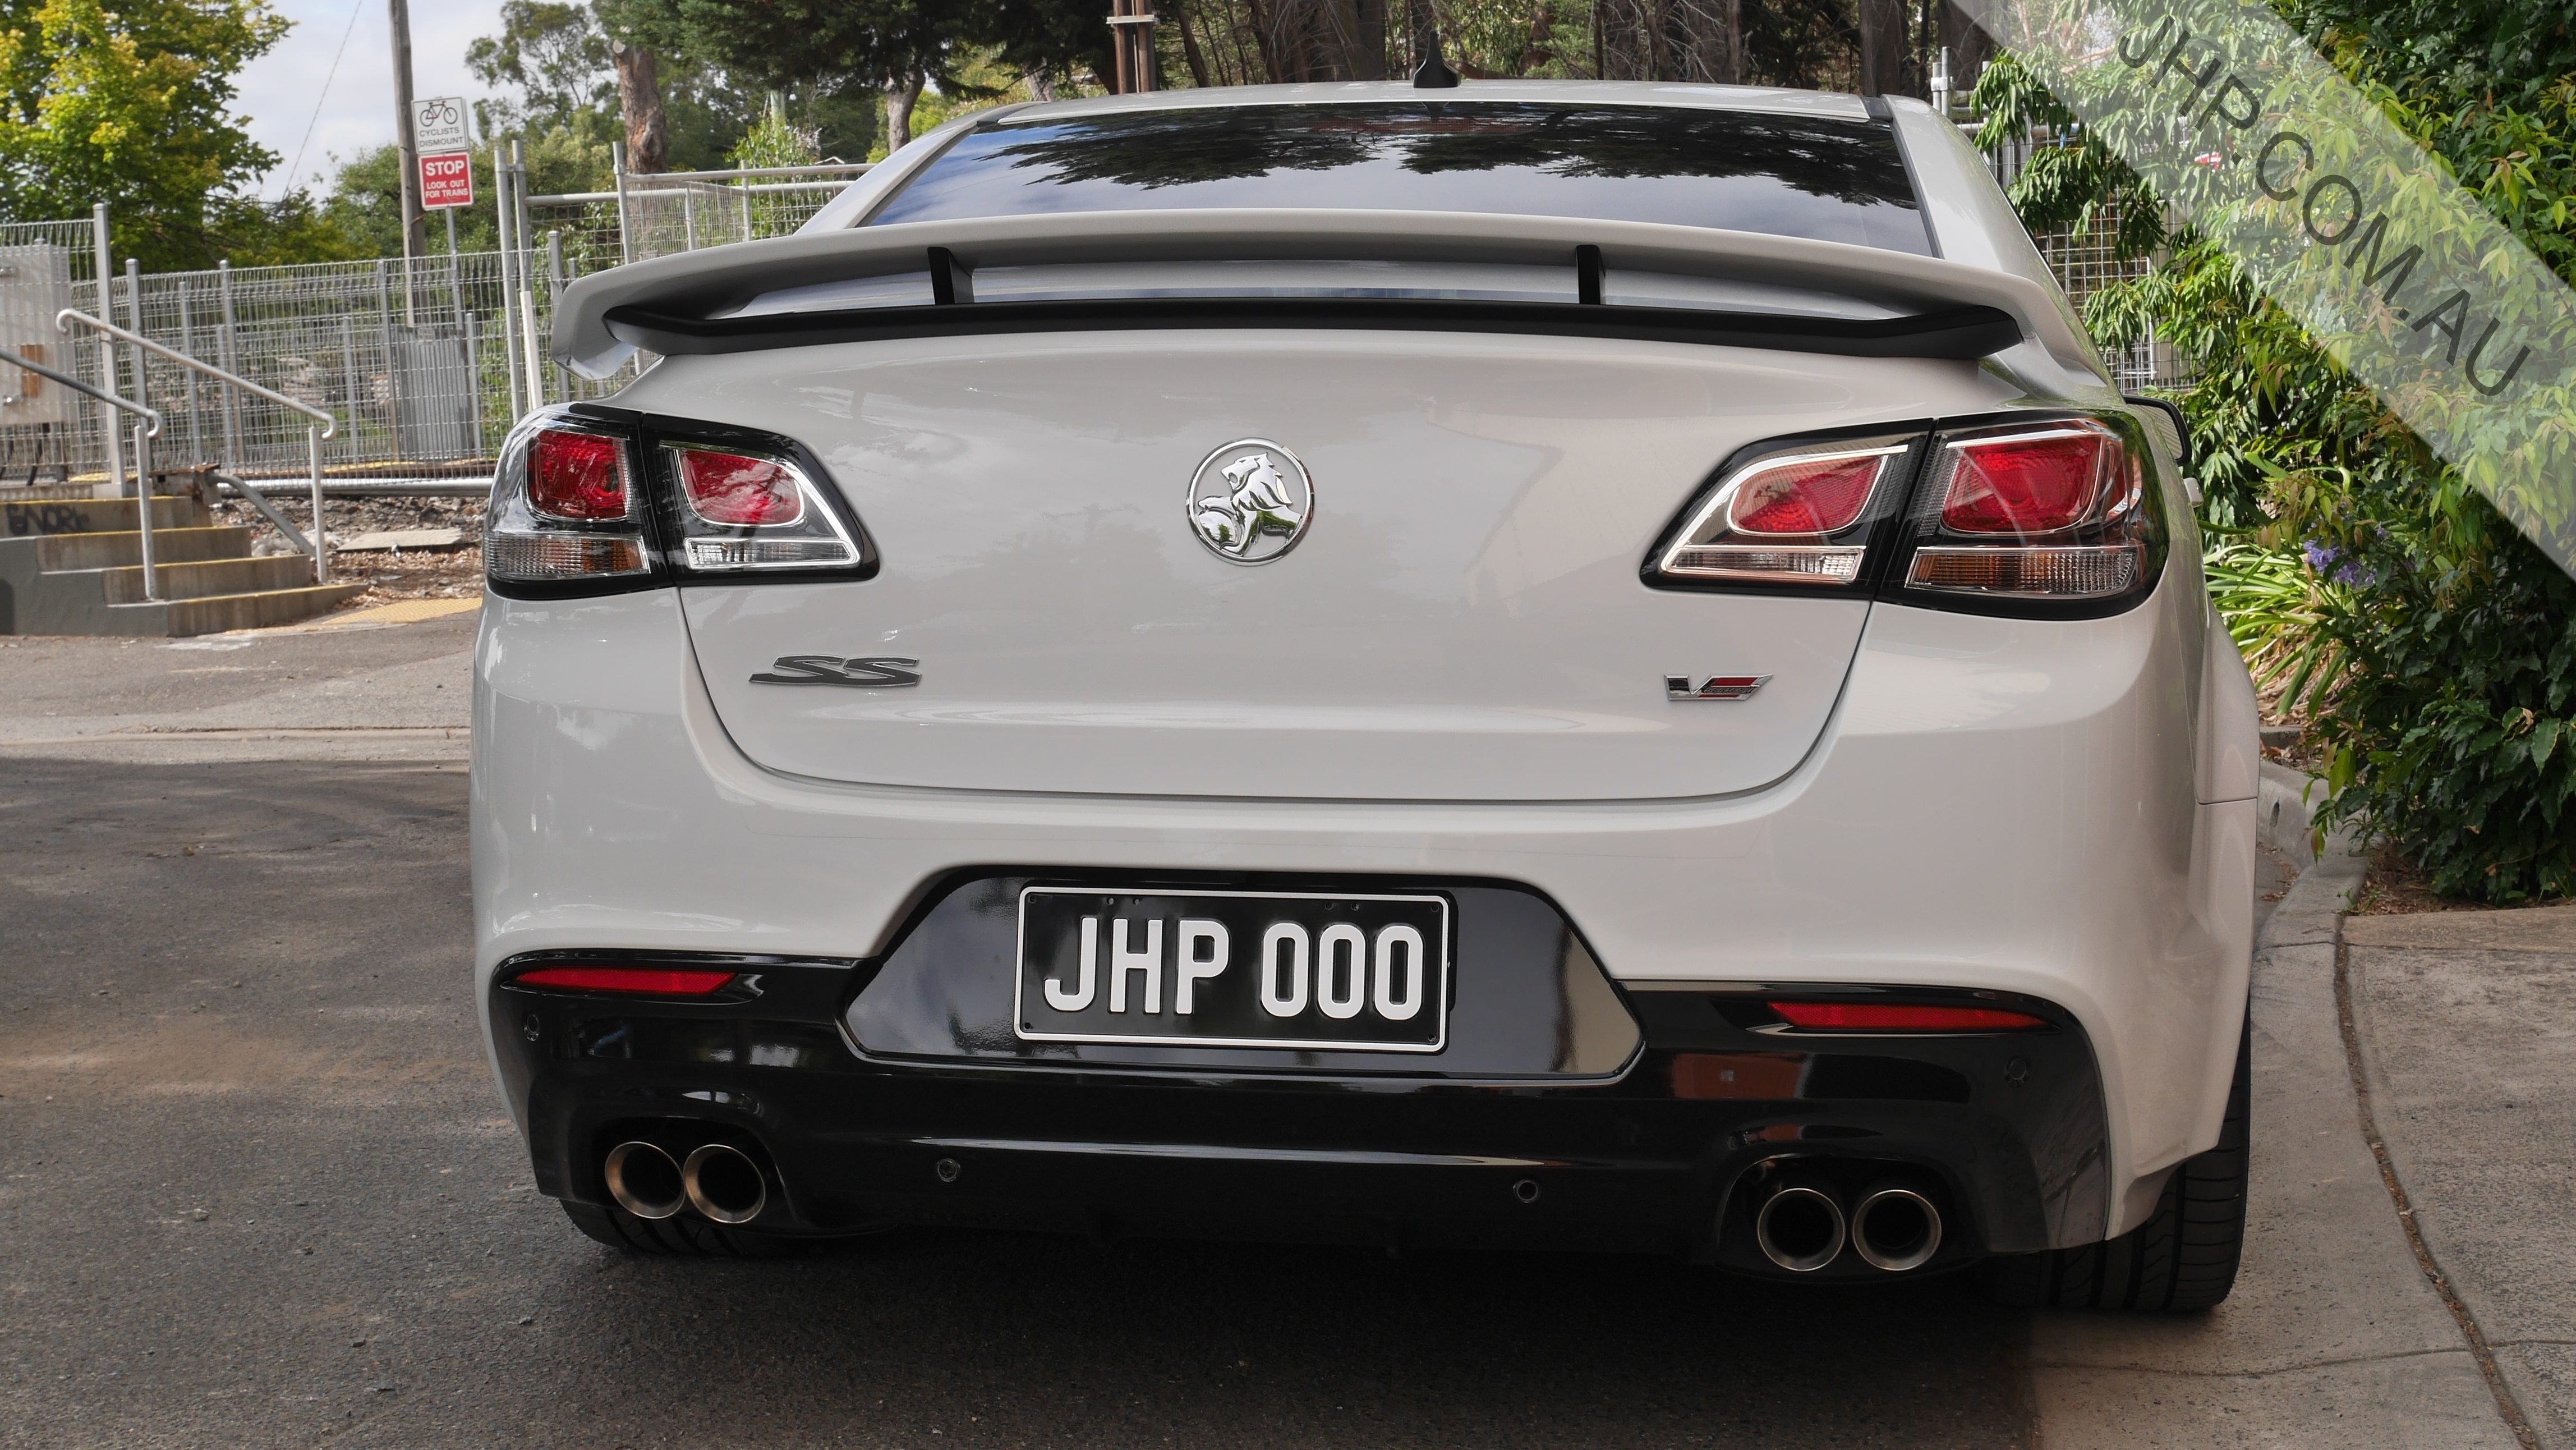 Chevy SS / VF Commodore Blackout Trim Parts Archives | JHP